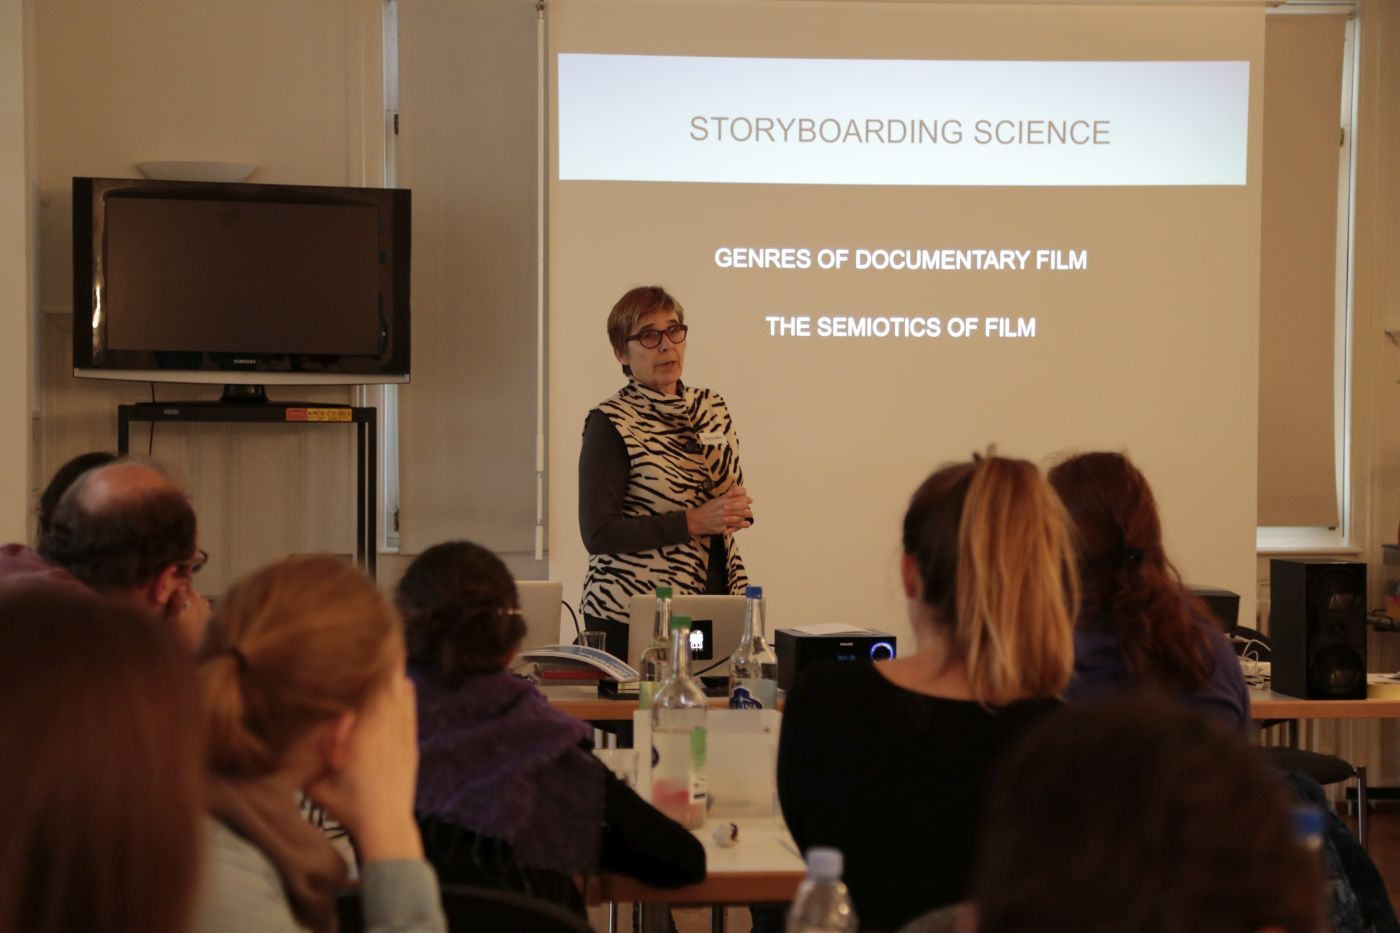 Rigi-Workshop Storyboarding Science, Prof. Marille Hahne (ZHdK)